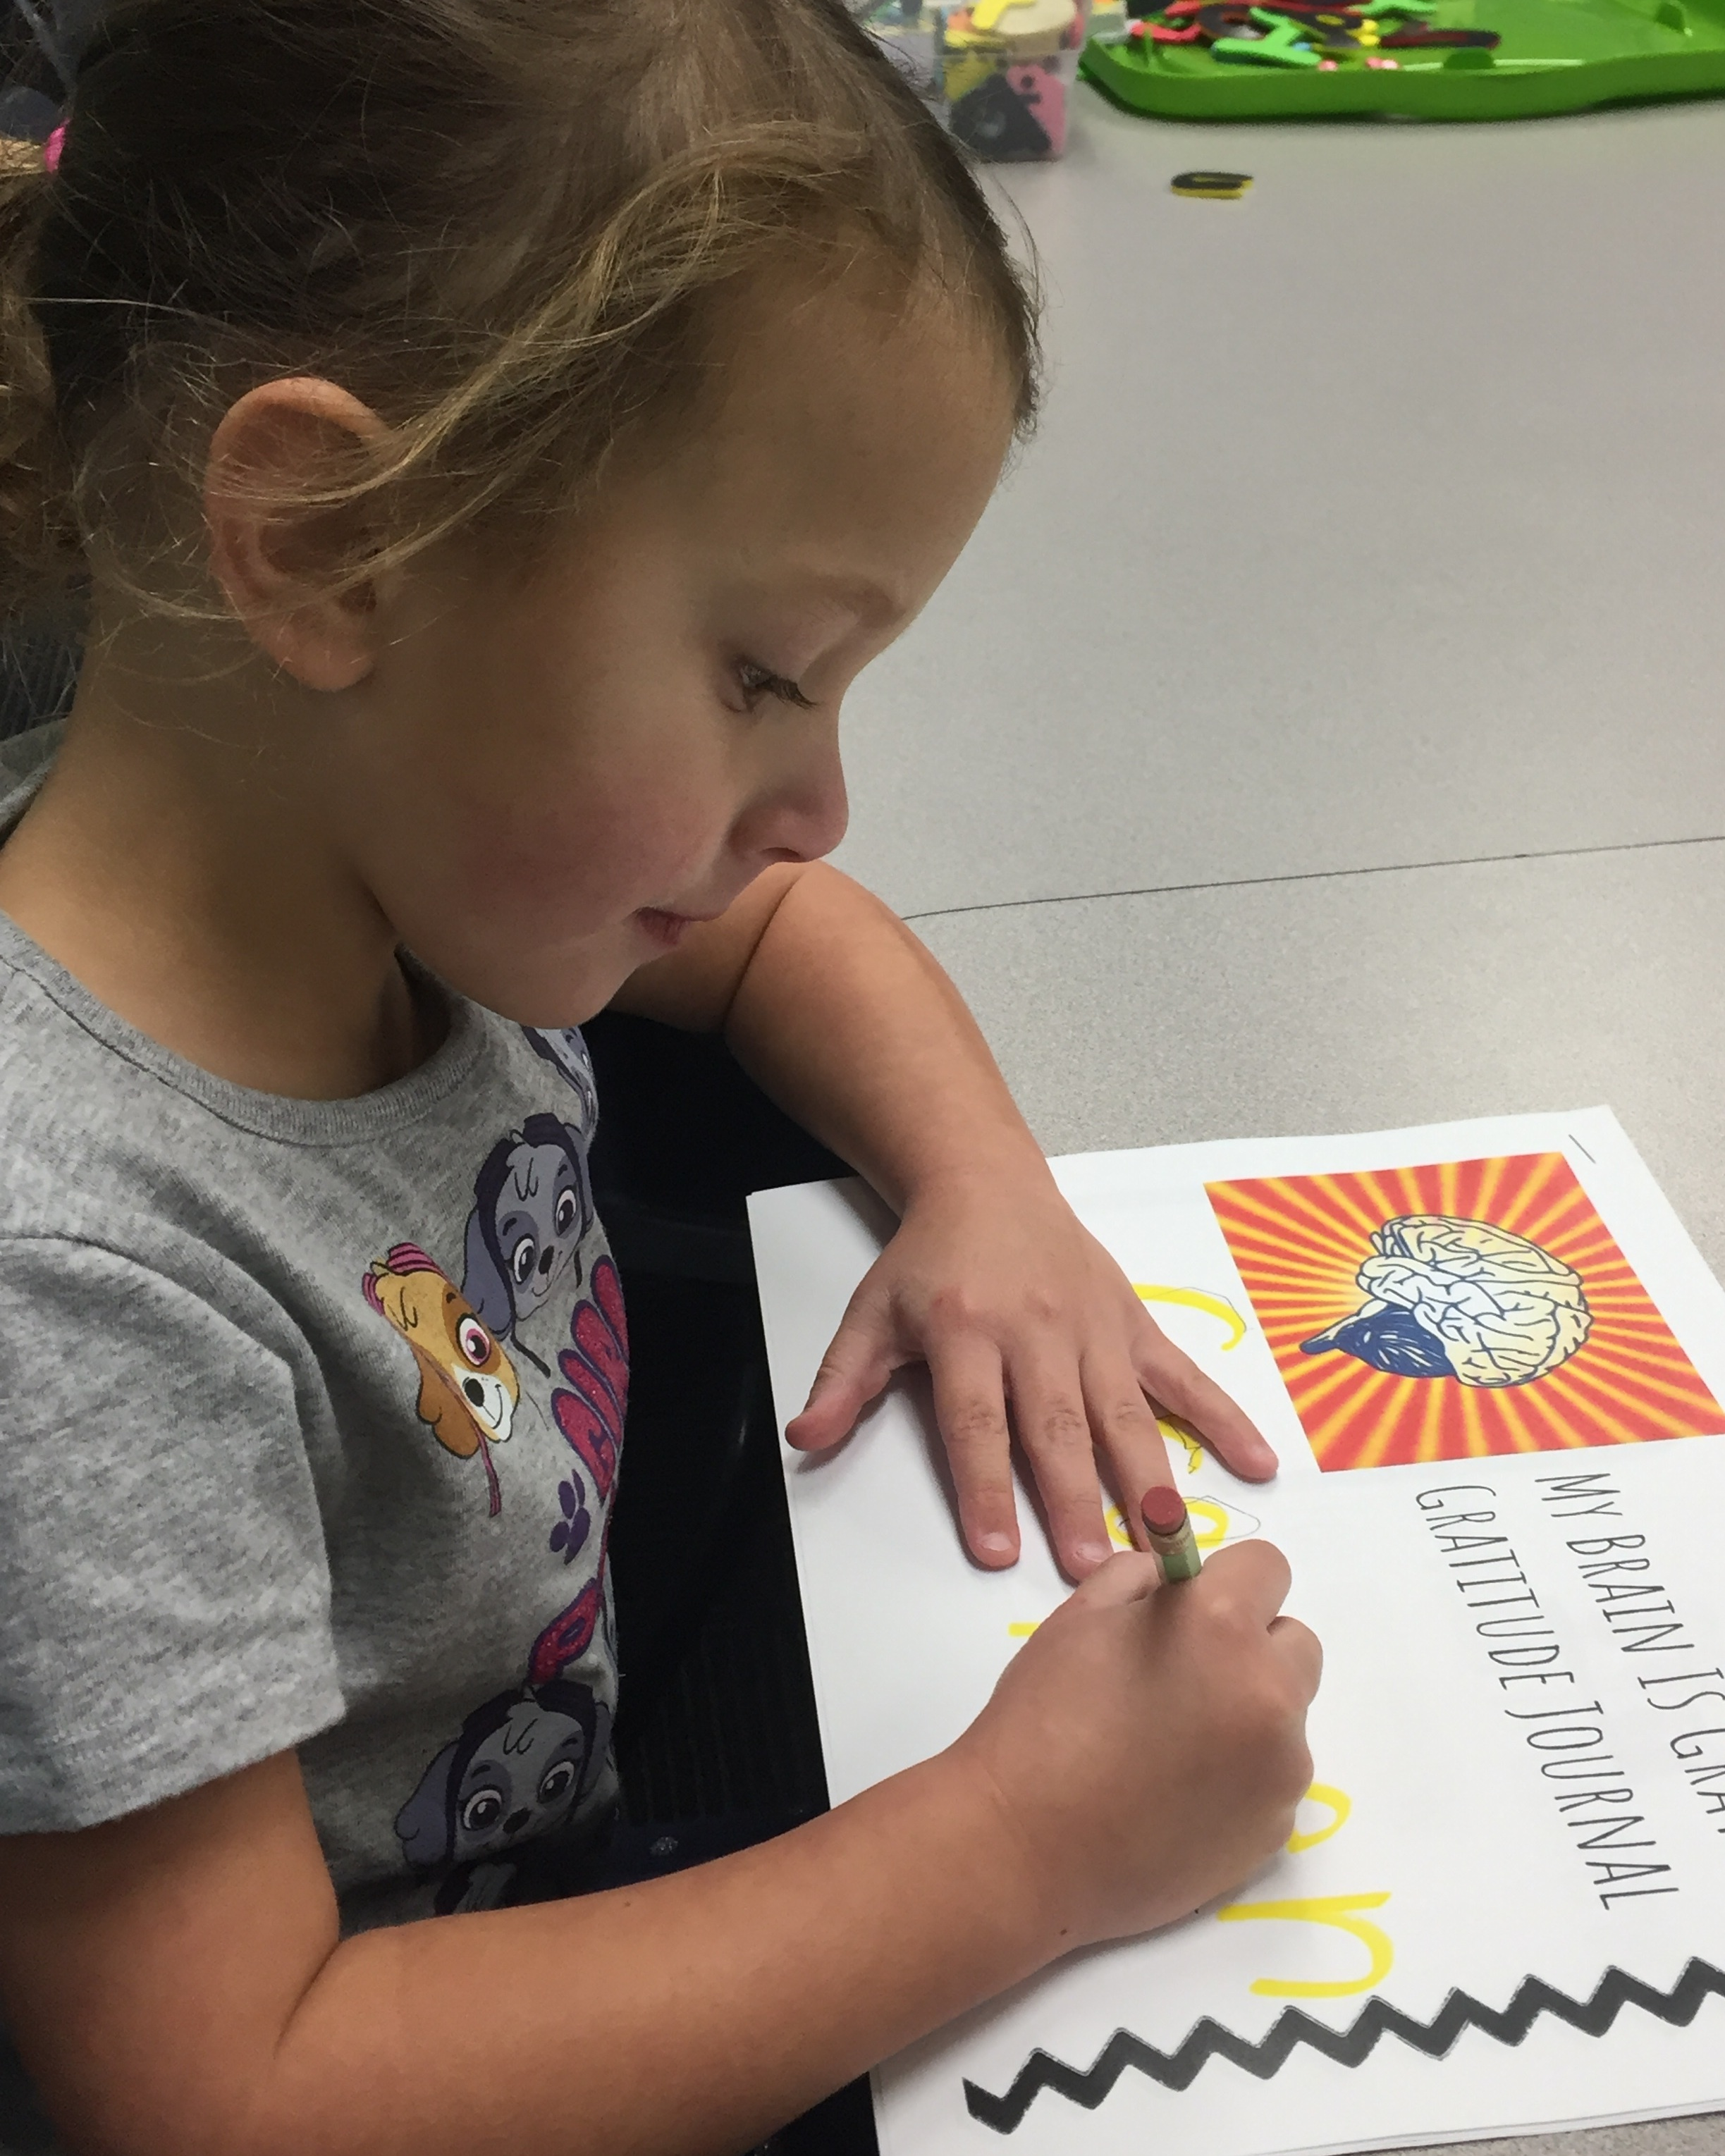 """Grow Strong Roots - """"Mindfulness education can reduce the negative effects of stress and increase the student's ability to stay engaged helping them stay on track academically and avoid behavior problems."""" - Harvard University's Center for Education Policy Research"""